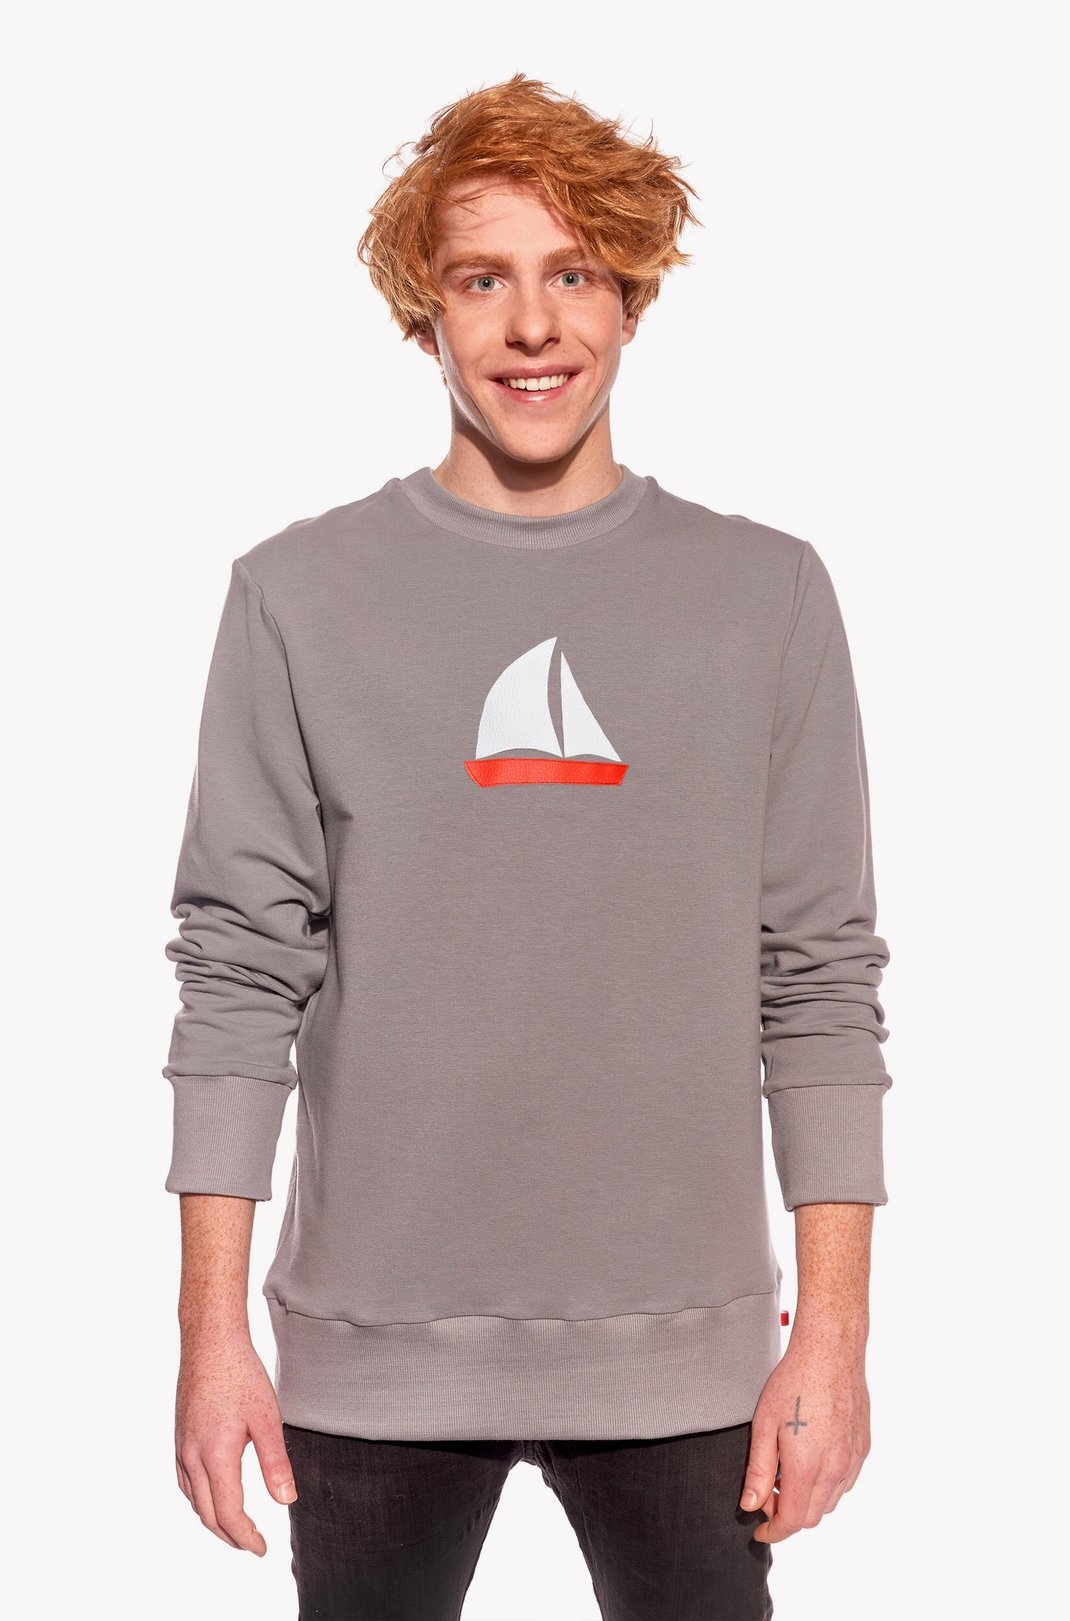 Hoodie with sailboat